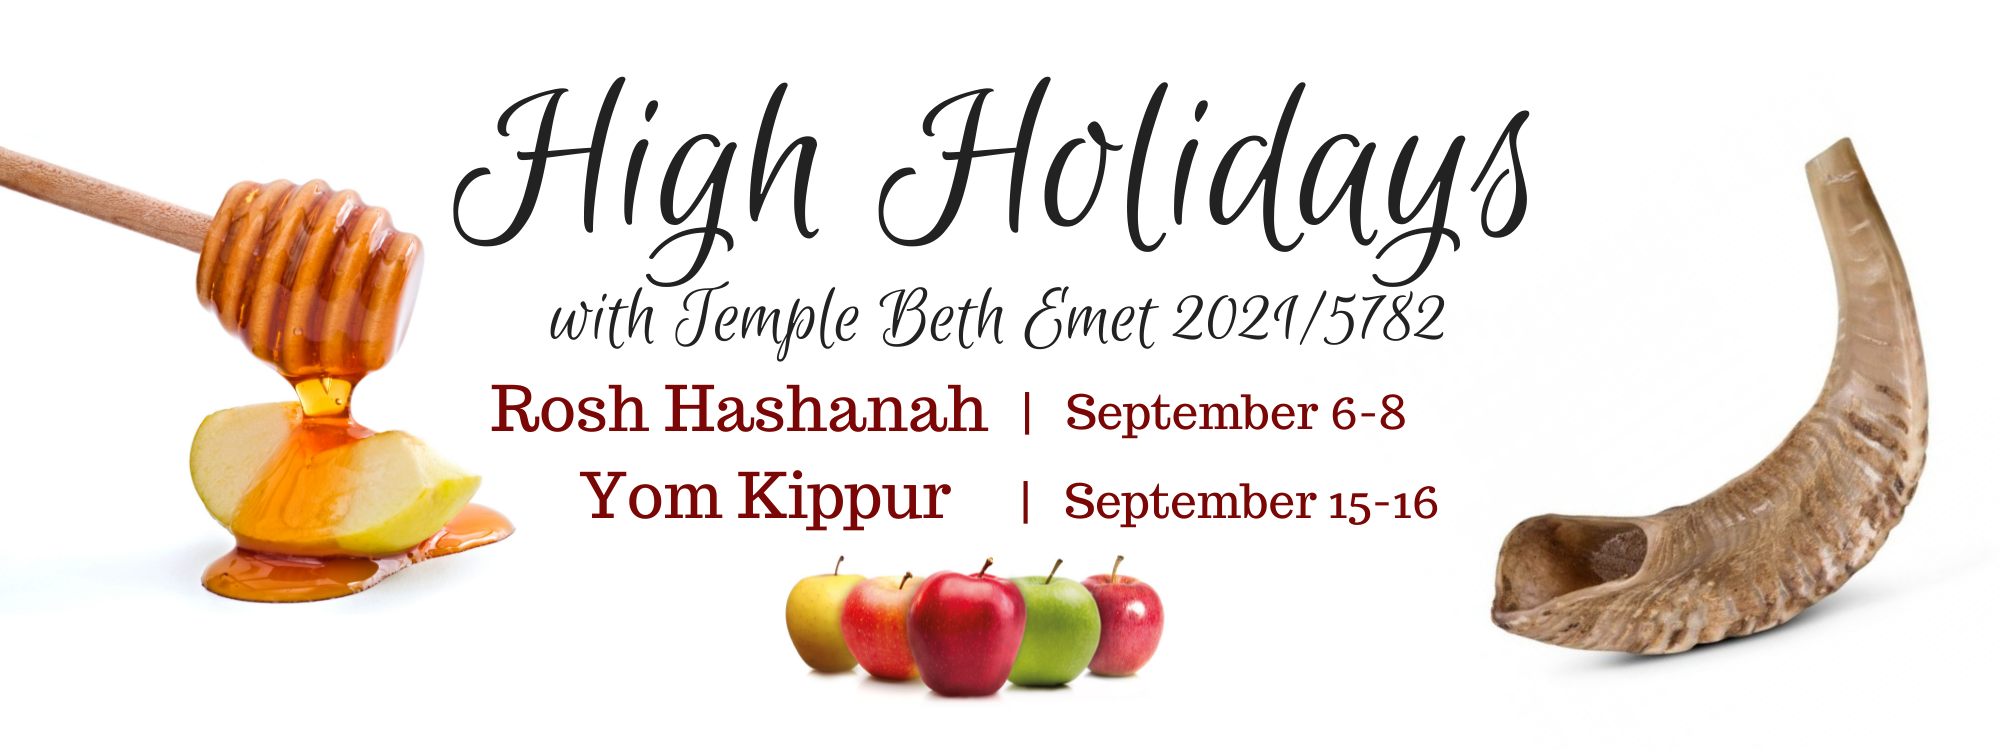 """<a href=""""https://www.templebethemet.org/hh5782""""                                     target=""""_blank"""">                                                                 <span class=""""slider_title"""">                                     High Holidays 2021                                </span>                                                                 </a>                                                                                                                                                                                       <span class=""""slider_description"""">Everything you need to know for High Holidays 2021.</span>                                                                                     <a href=""""https://www.templebethemet.org/hh5782"""" class=""""slider_link""""                             target=""""_blank"""">                             Learn More                            </a>"""